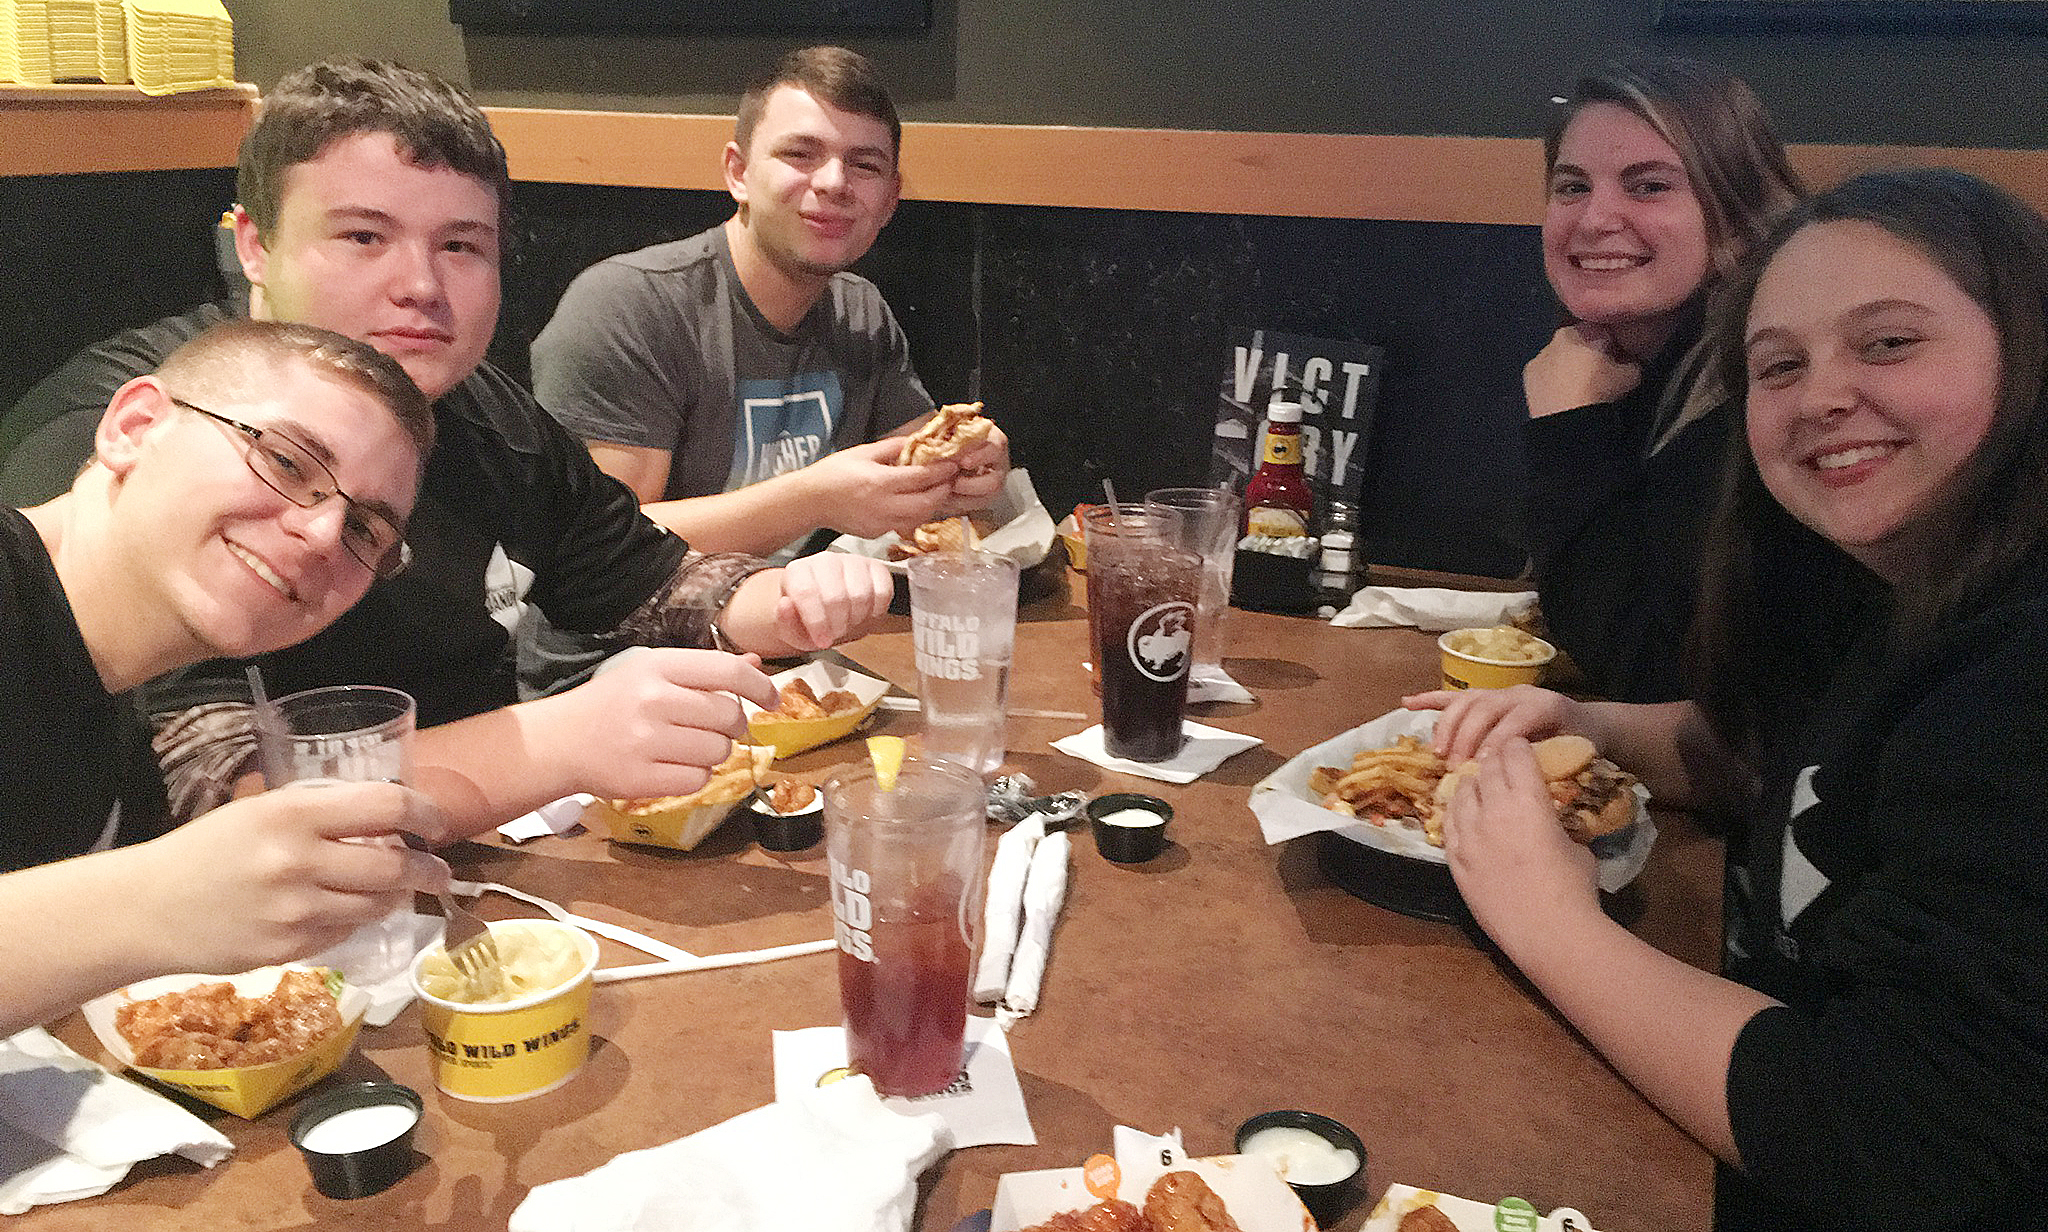 CHS students chosen to participate in the Western Kentucky University Honors Band Clinic take a dinner break. From left are junior Brandon Greer, sophomore Conner Riley, seniors Chaz Babbs and Tiffany Kane and junior Ruby Hatfield.